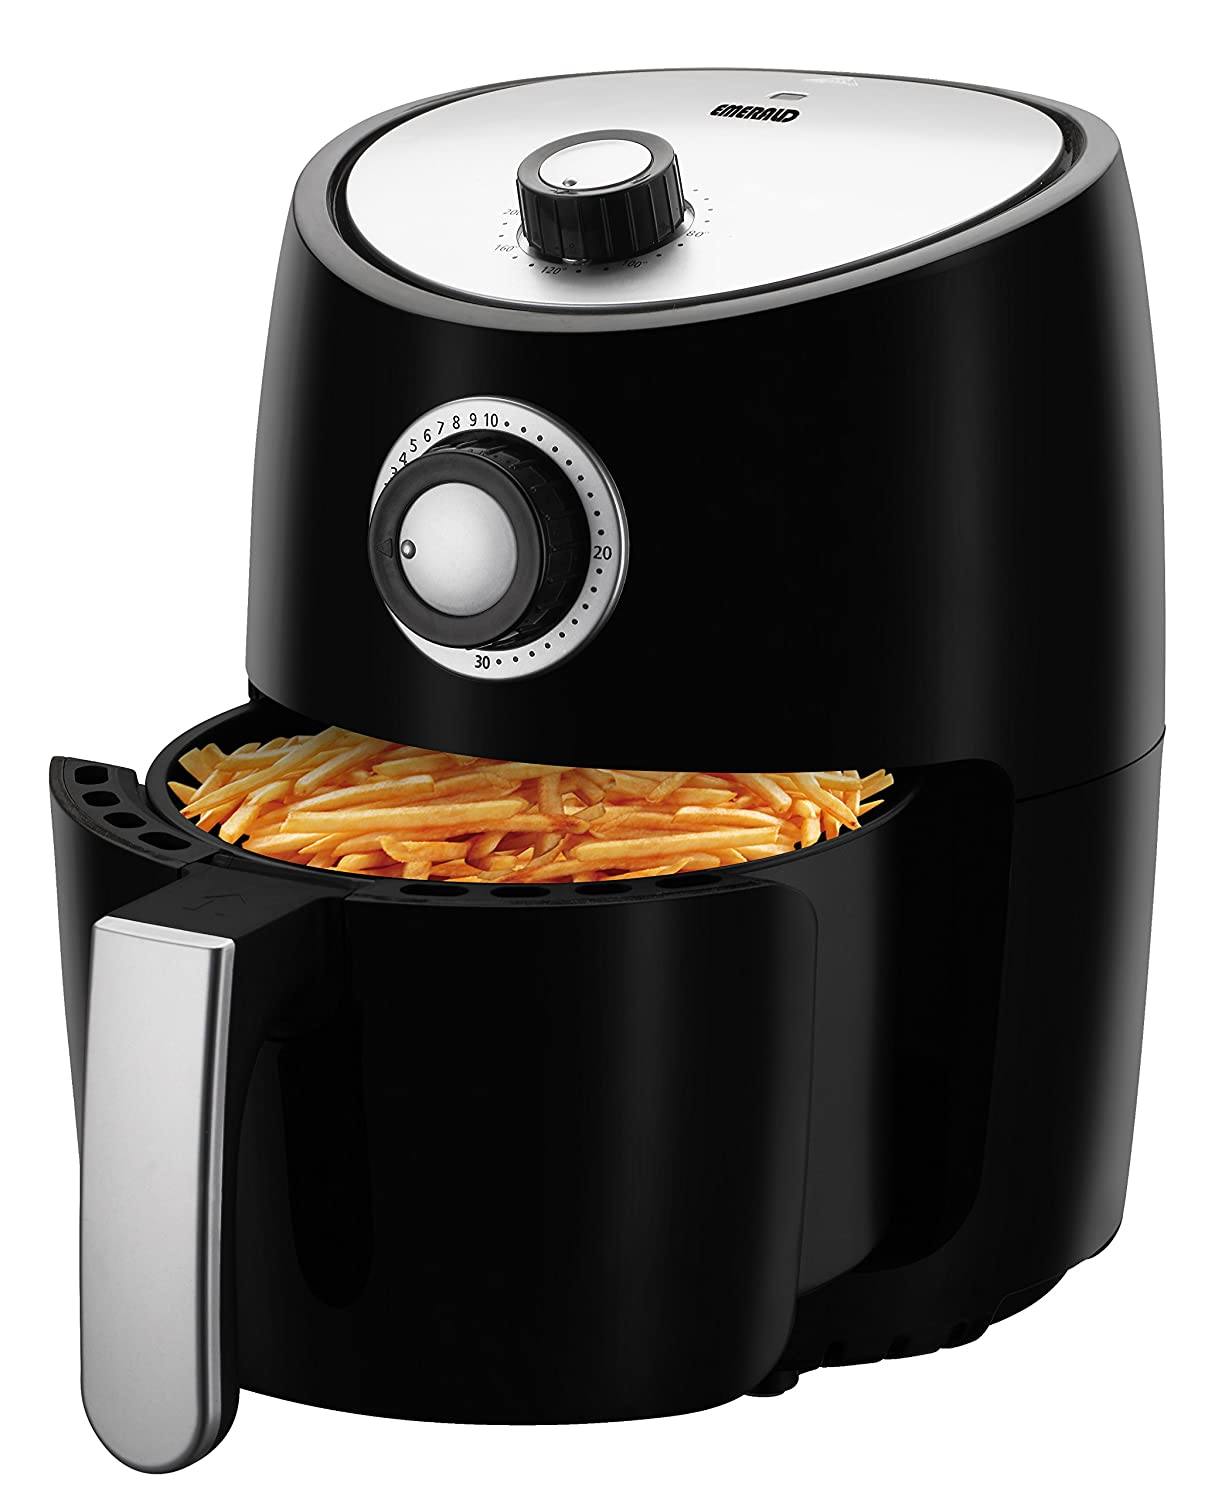 Emerald Compact 2 Liter Capacity Air Fryer and Recipe Book, 1000 Watts (1800)